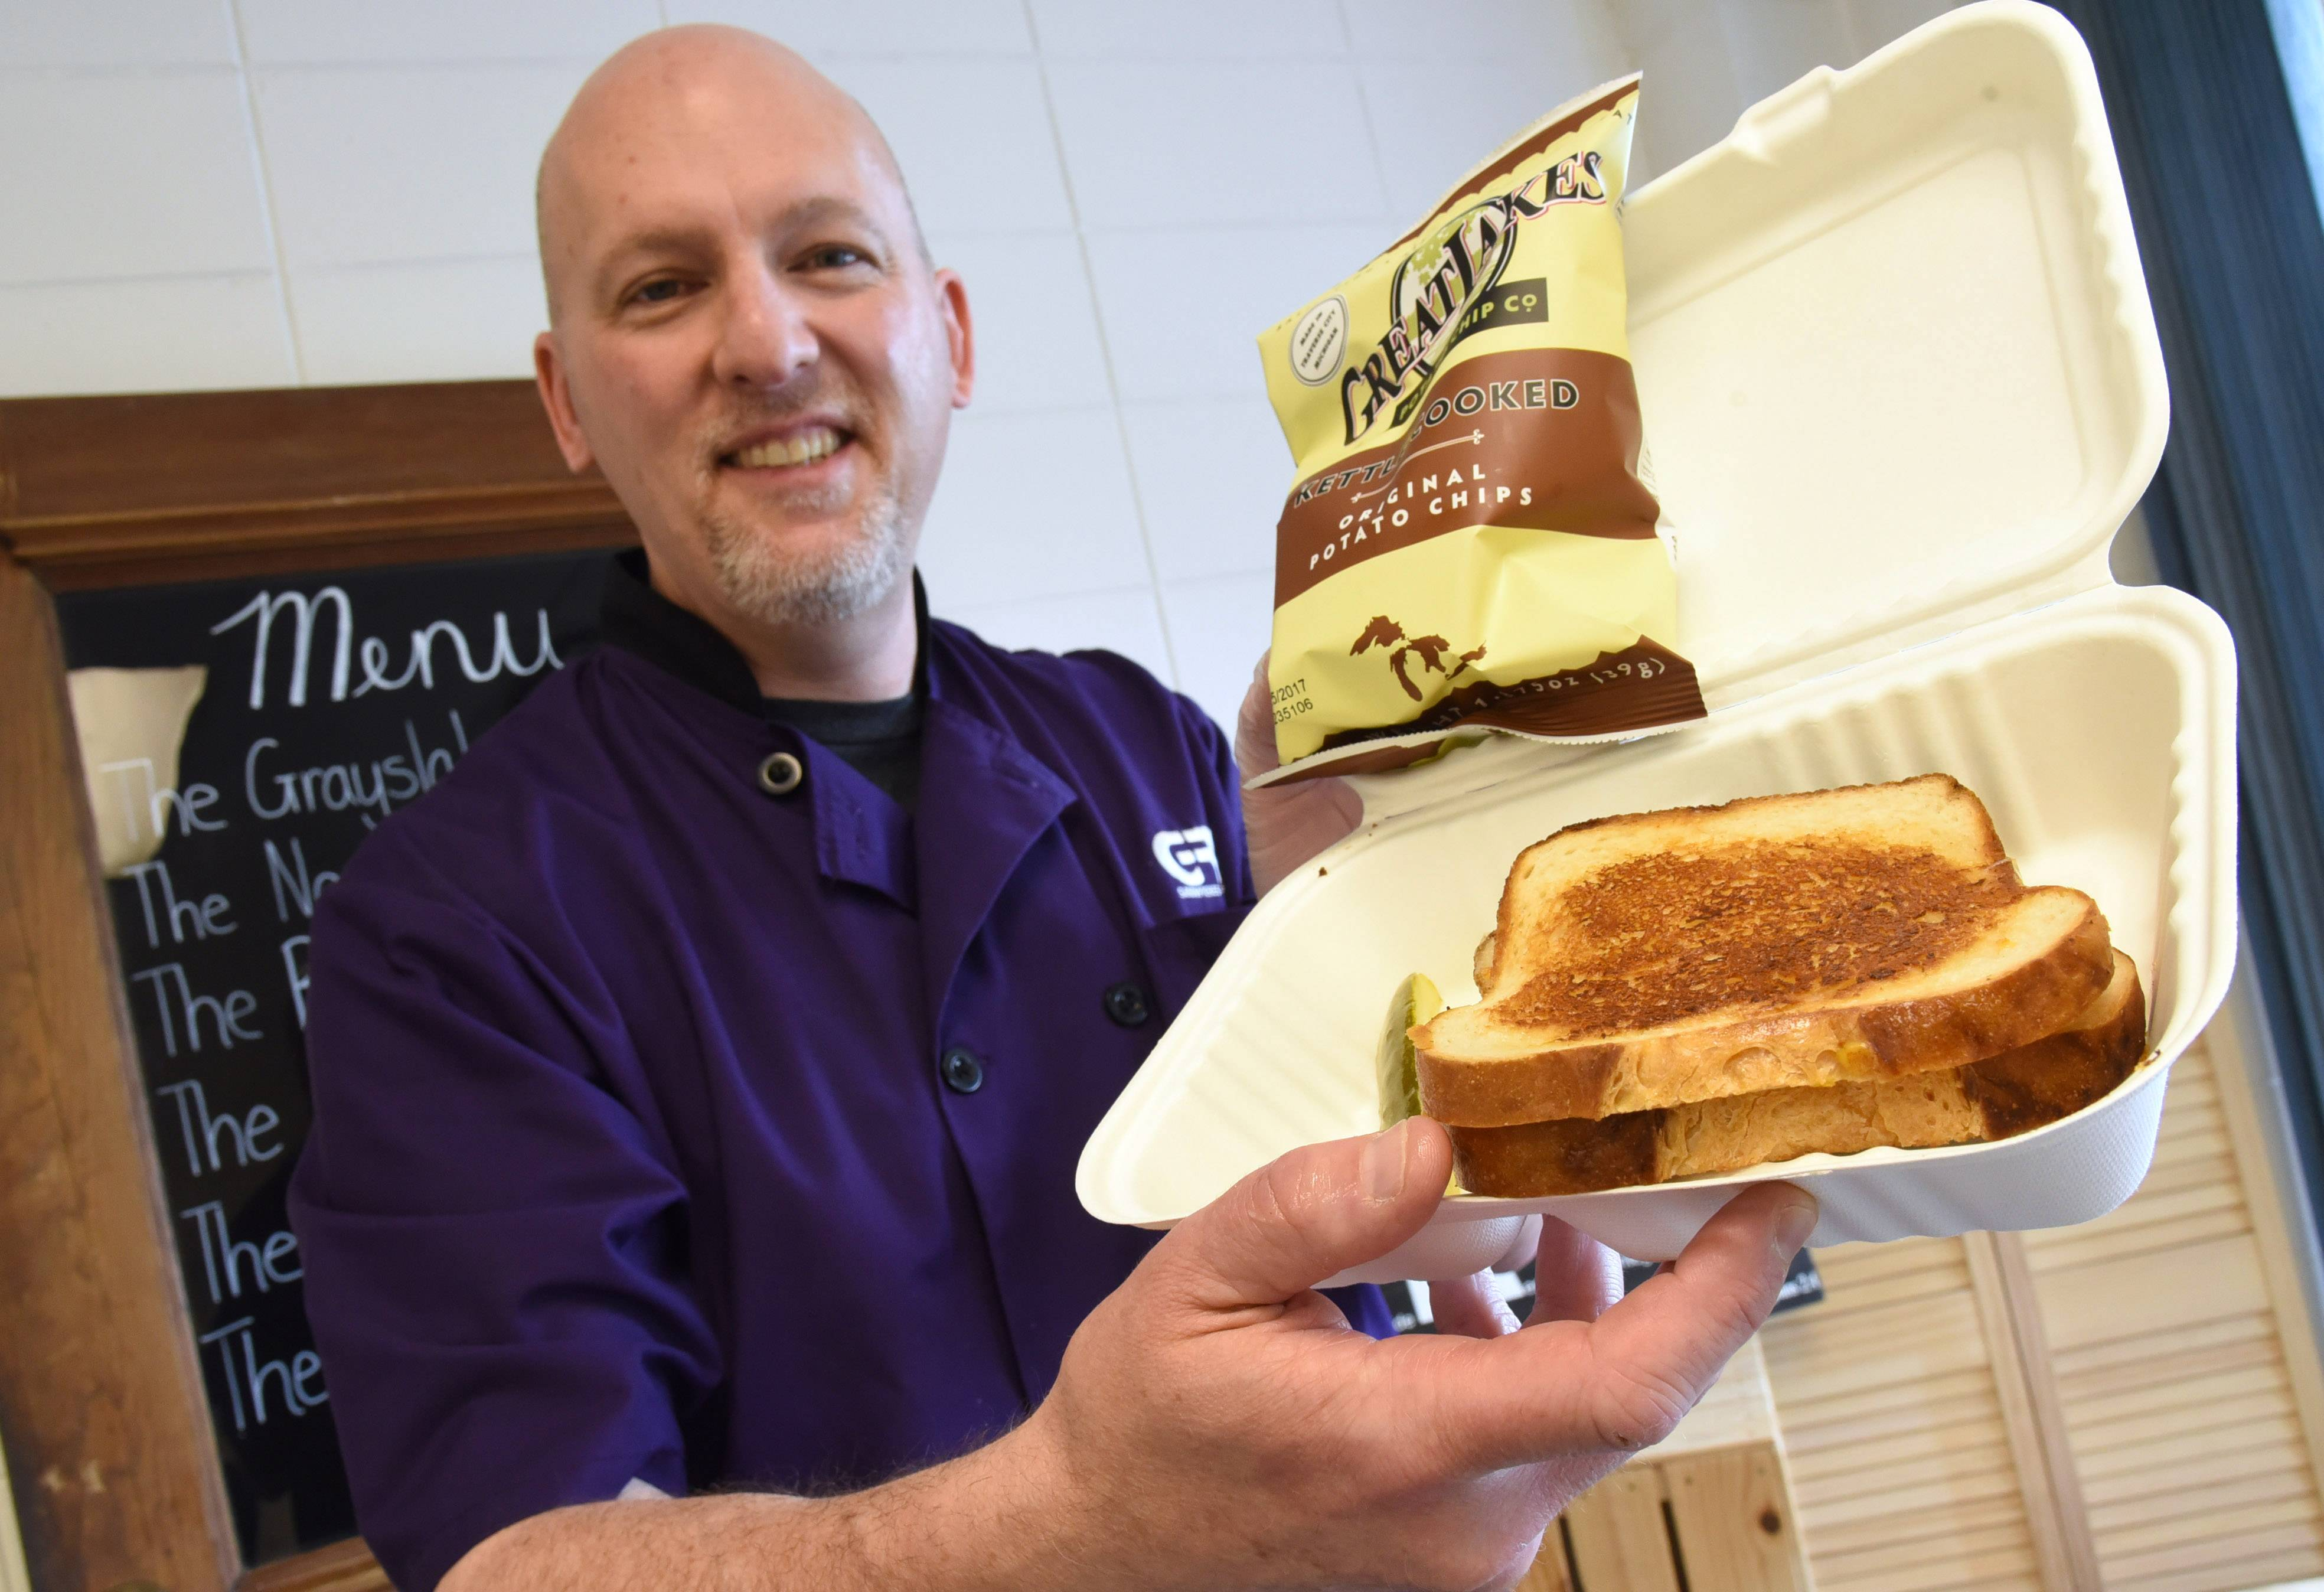 Takeout restaurant specializing in grilled cheese sandwiches opens in Mundelein